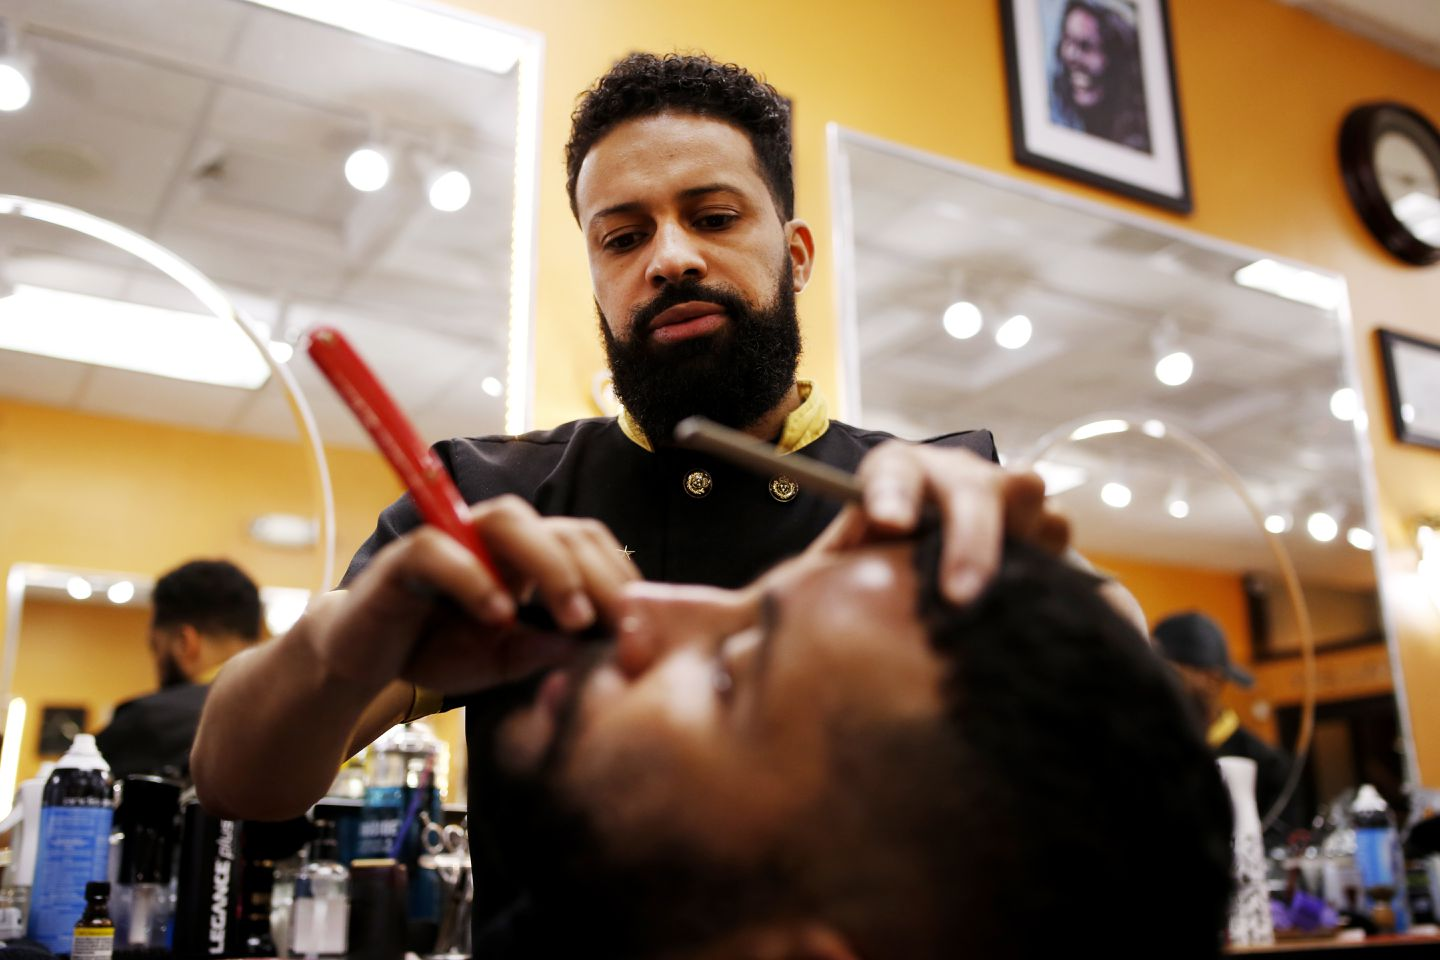 Lex Andre Daluz, owner of Marvelous Cuts, shaved Amalex Veiga's beard.